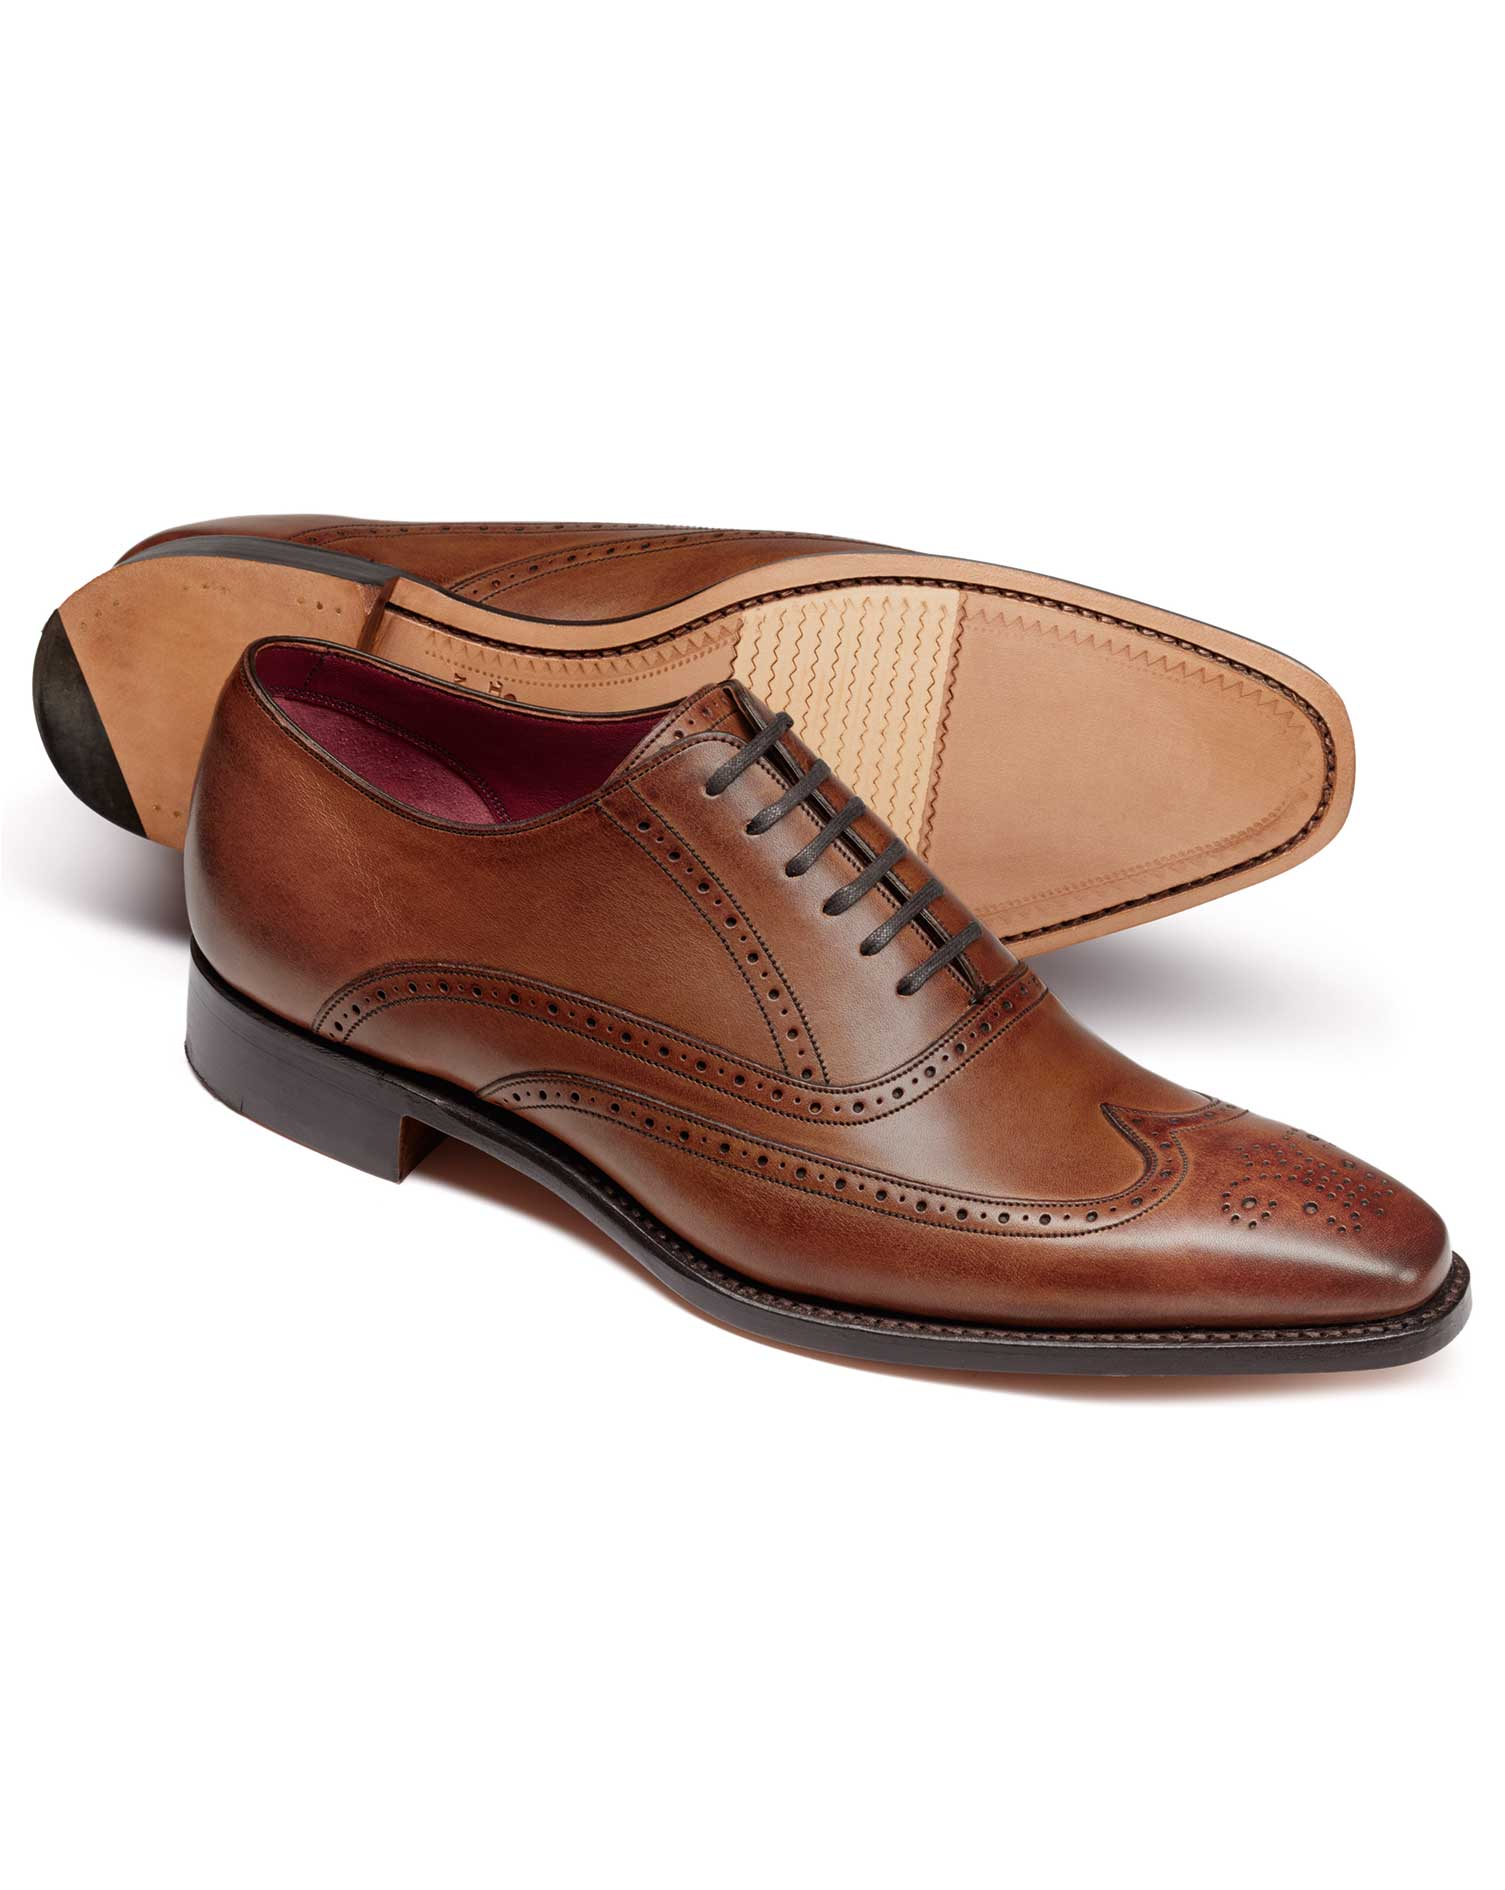 Chestnut Made In England Oxford Brogue Flex Sole Shoes Size 6 R by Charles Tyrwhitt